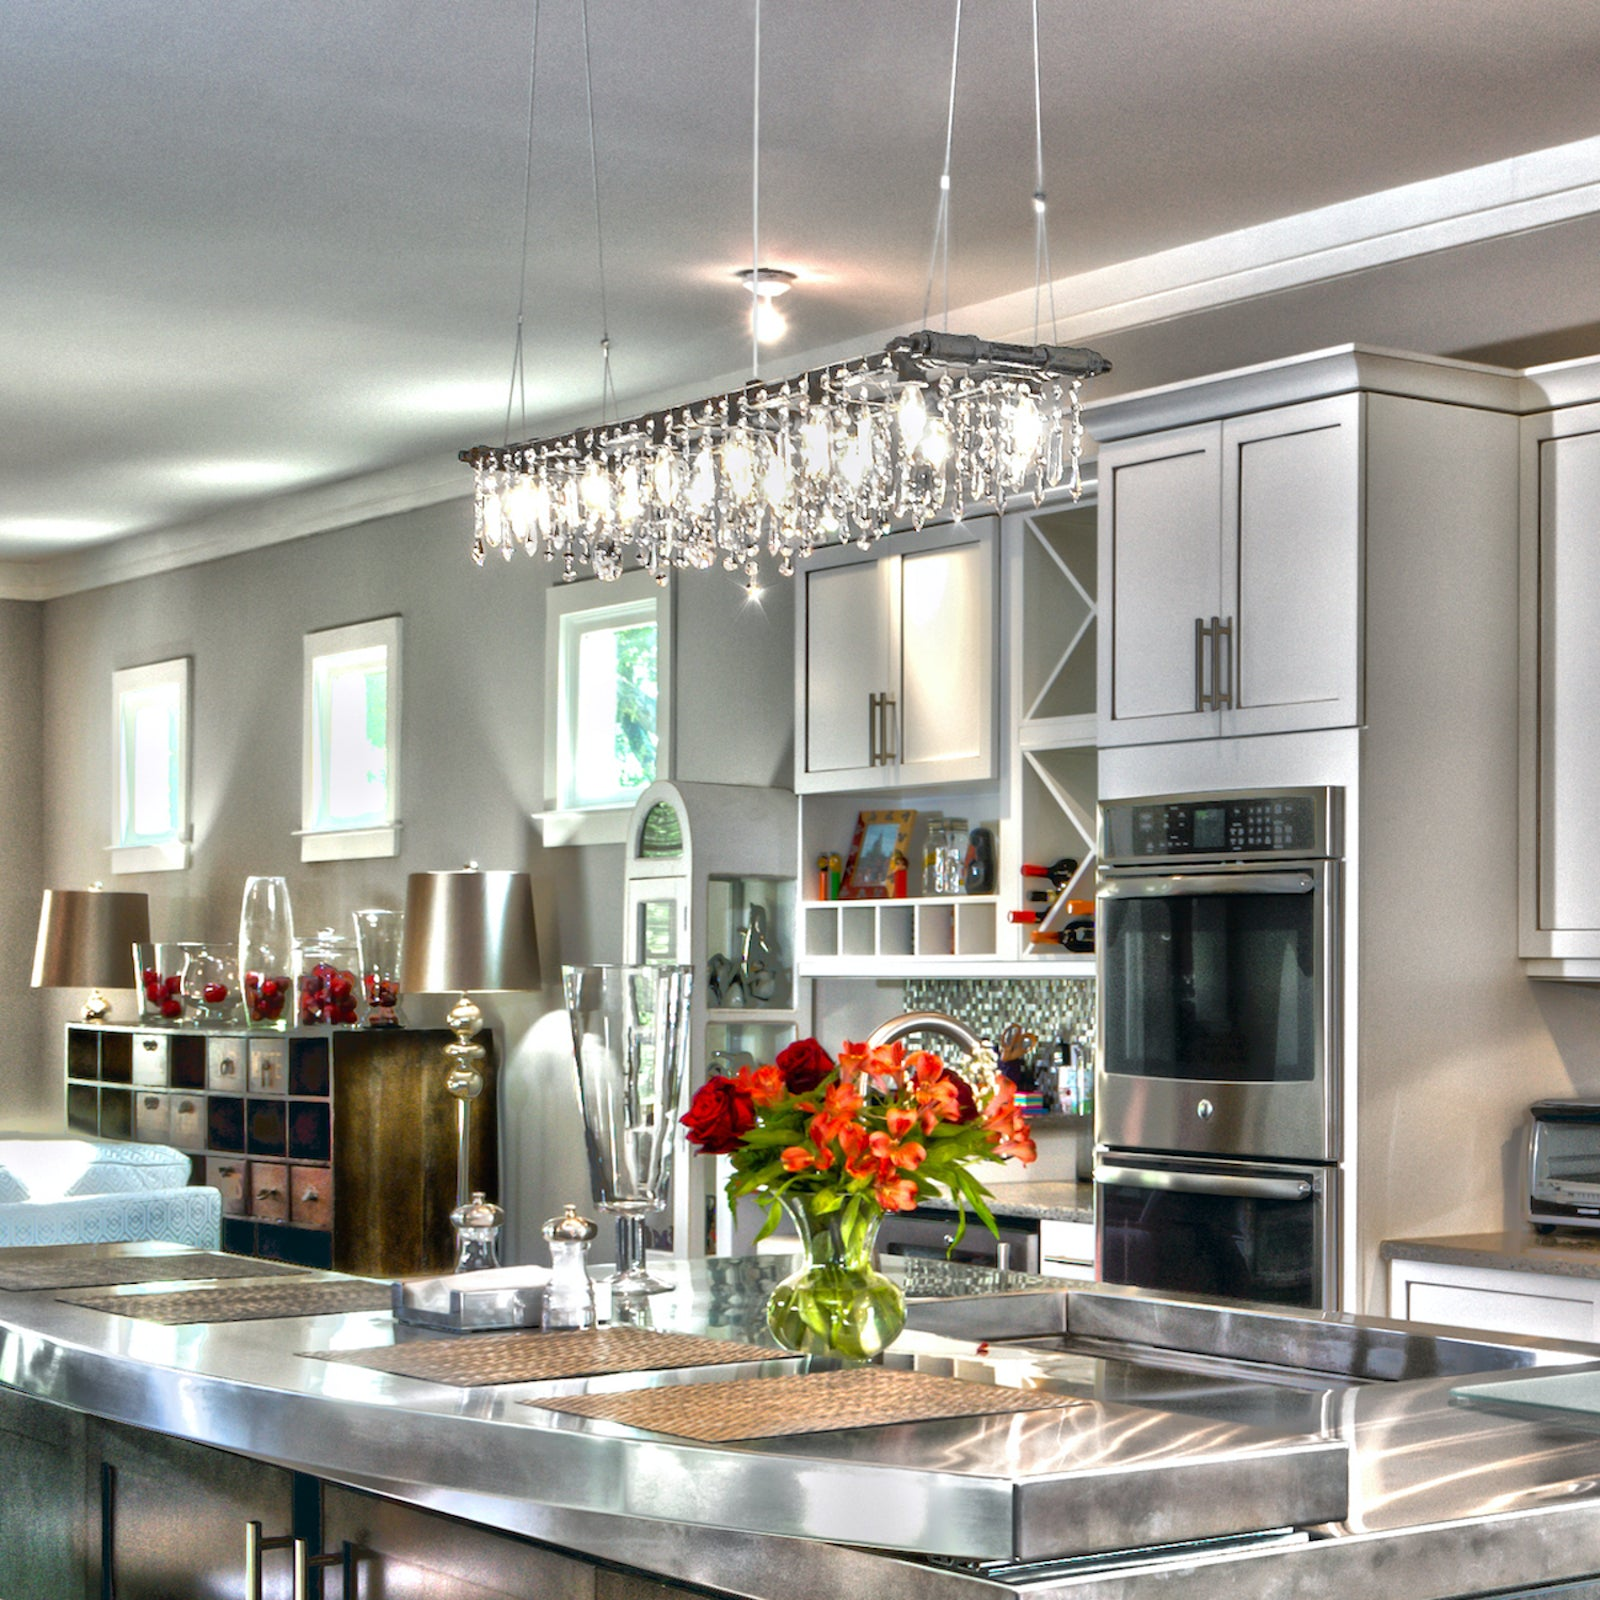 A Tribeca Banqueting Chandelier over a kitchen island